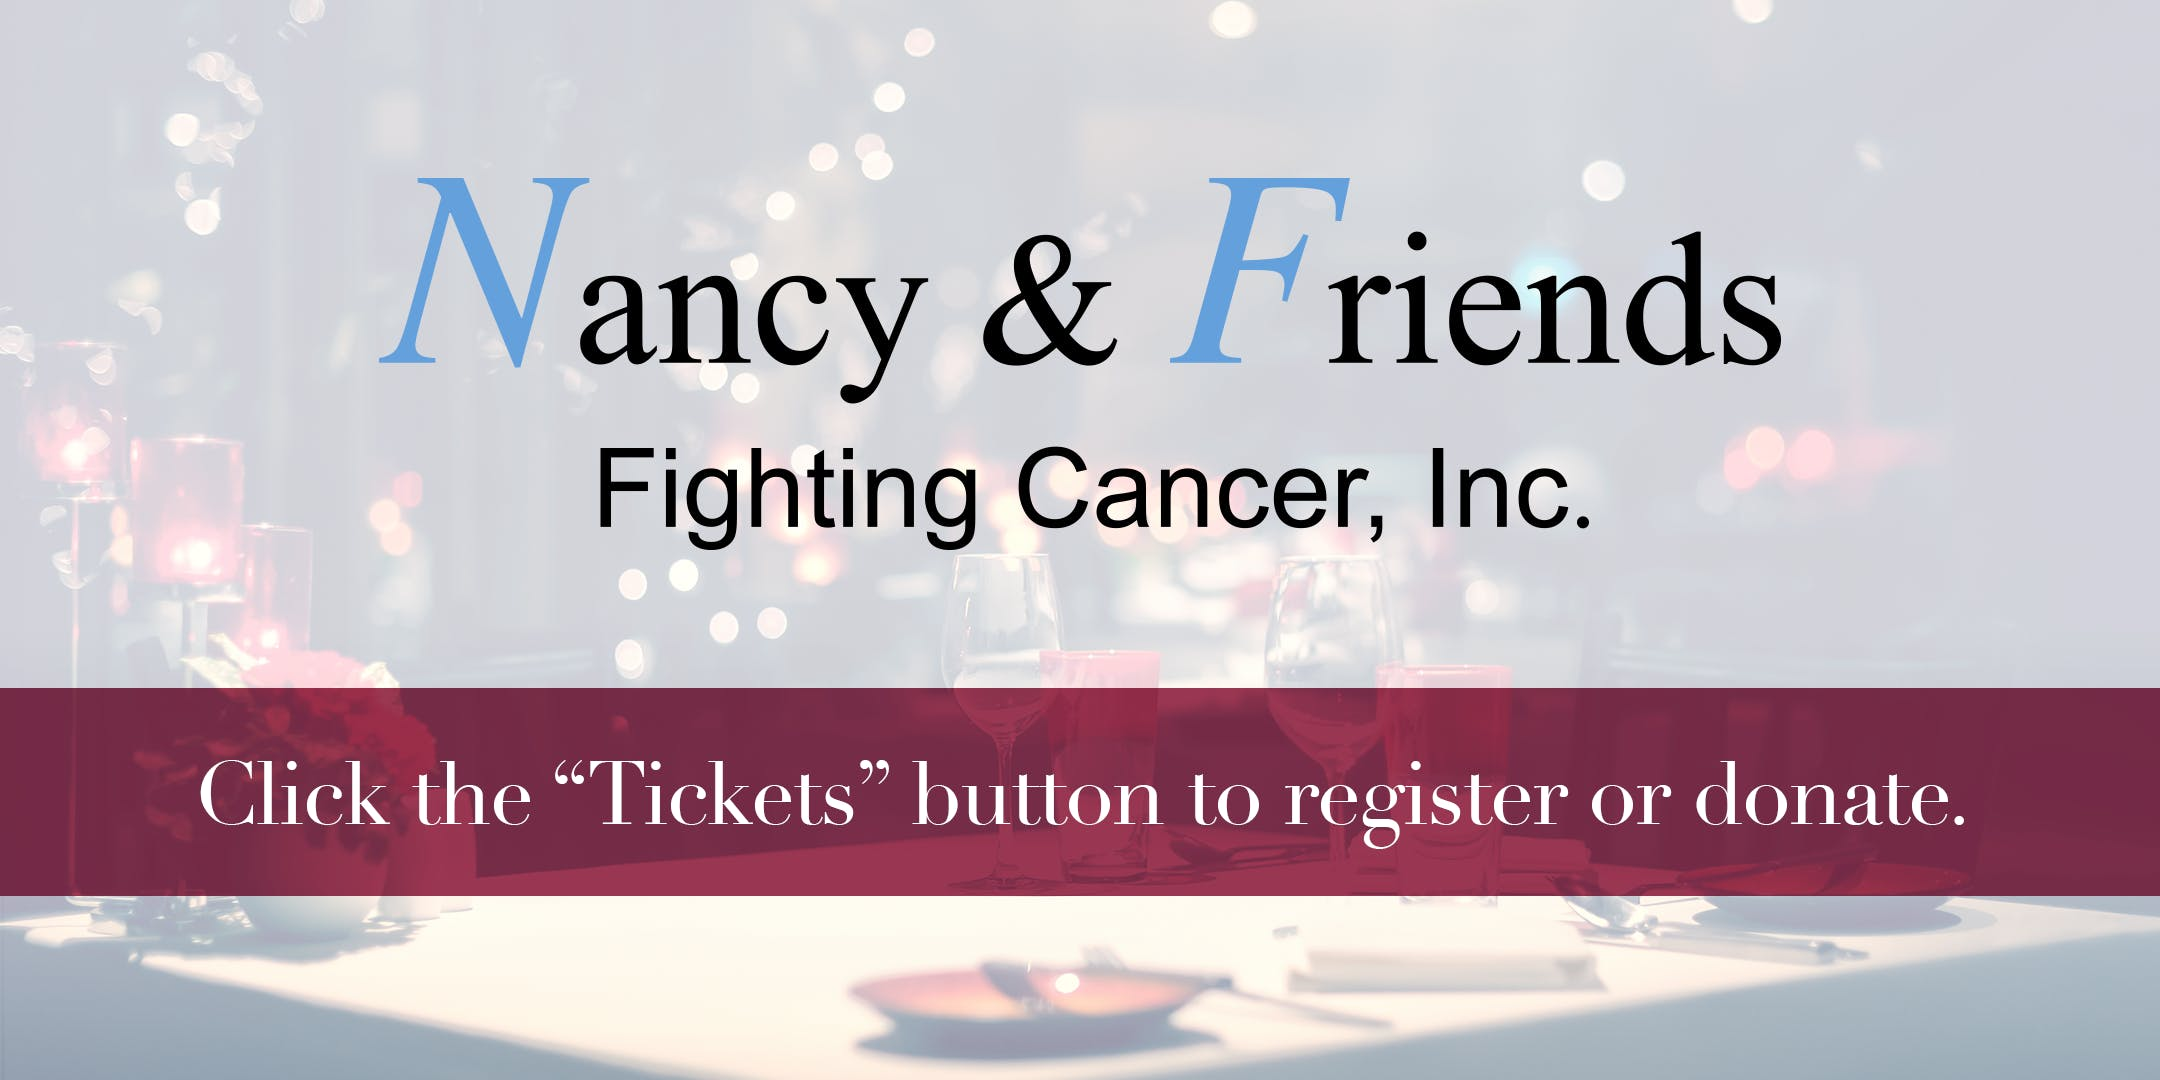 Nancy & Friends Fighting Cancer